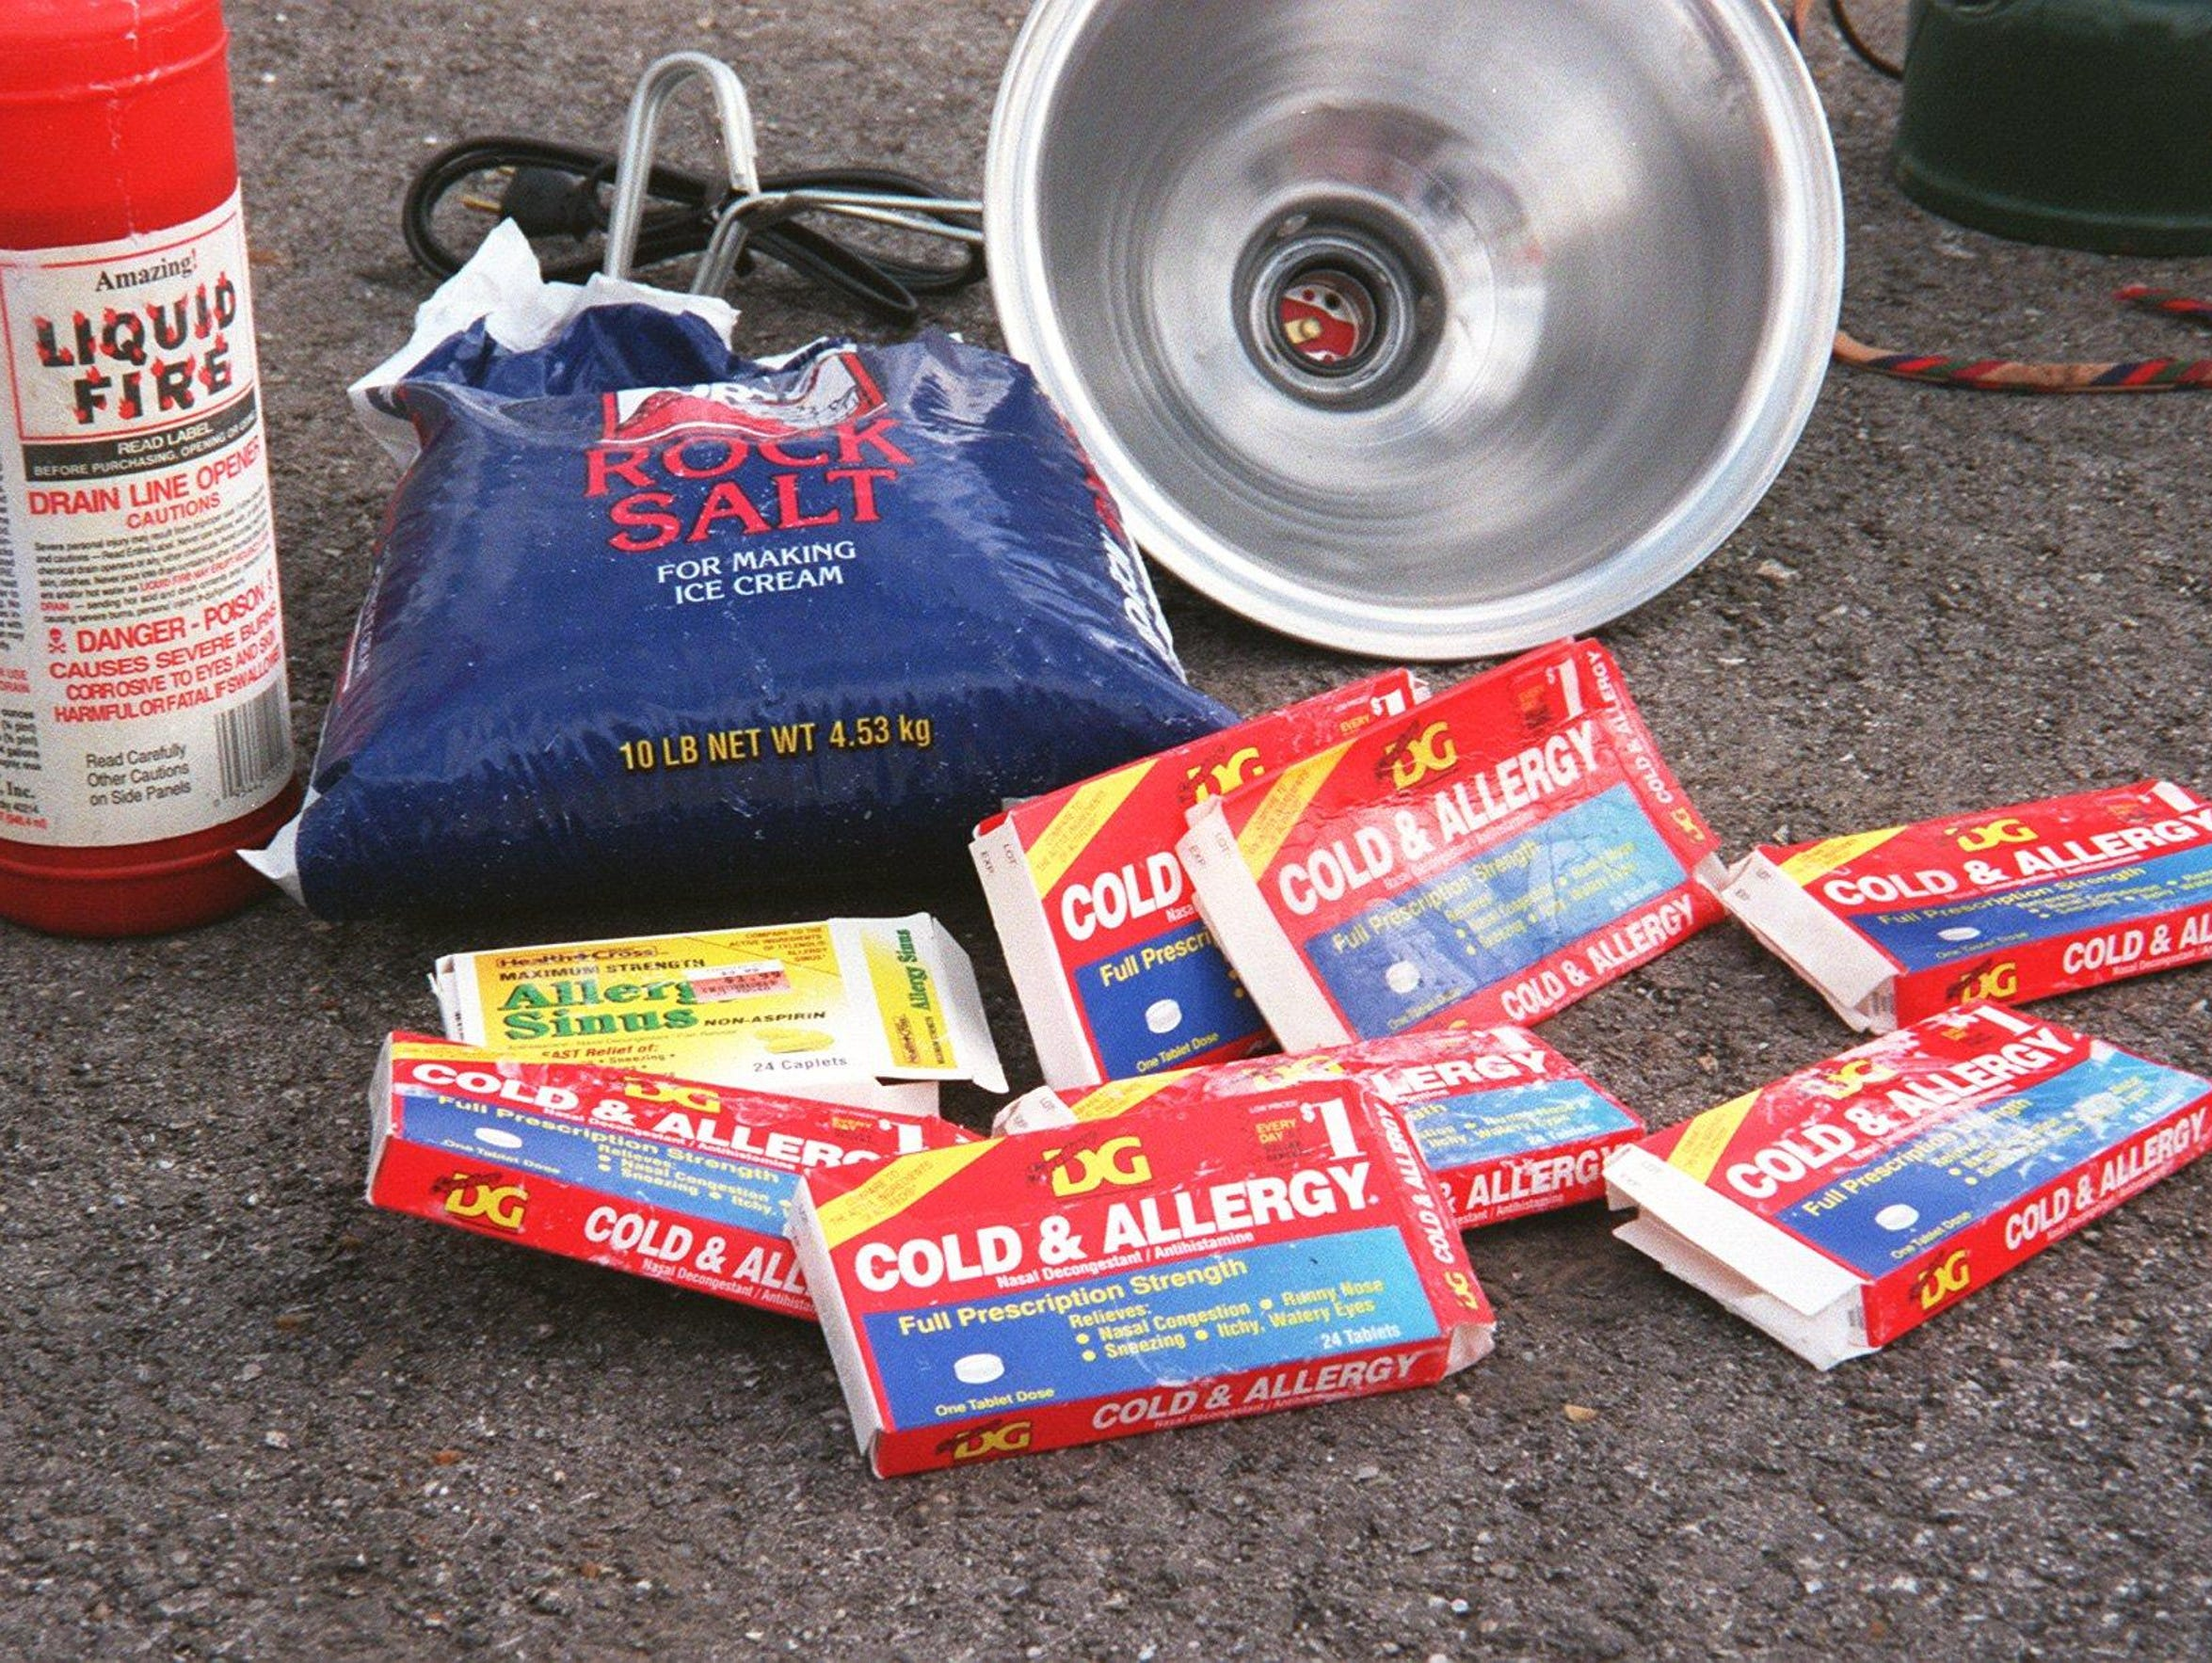 This 1998 photo shows items confiscated from a suspected